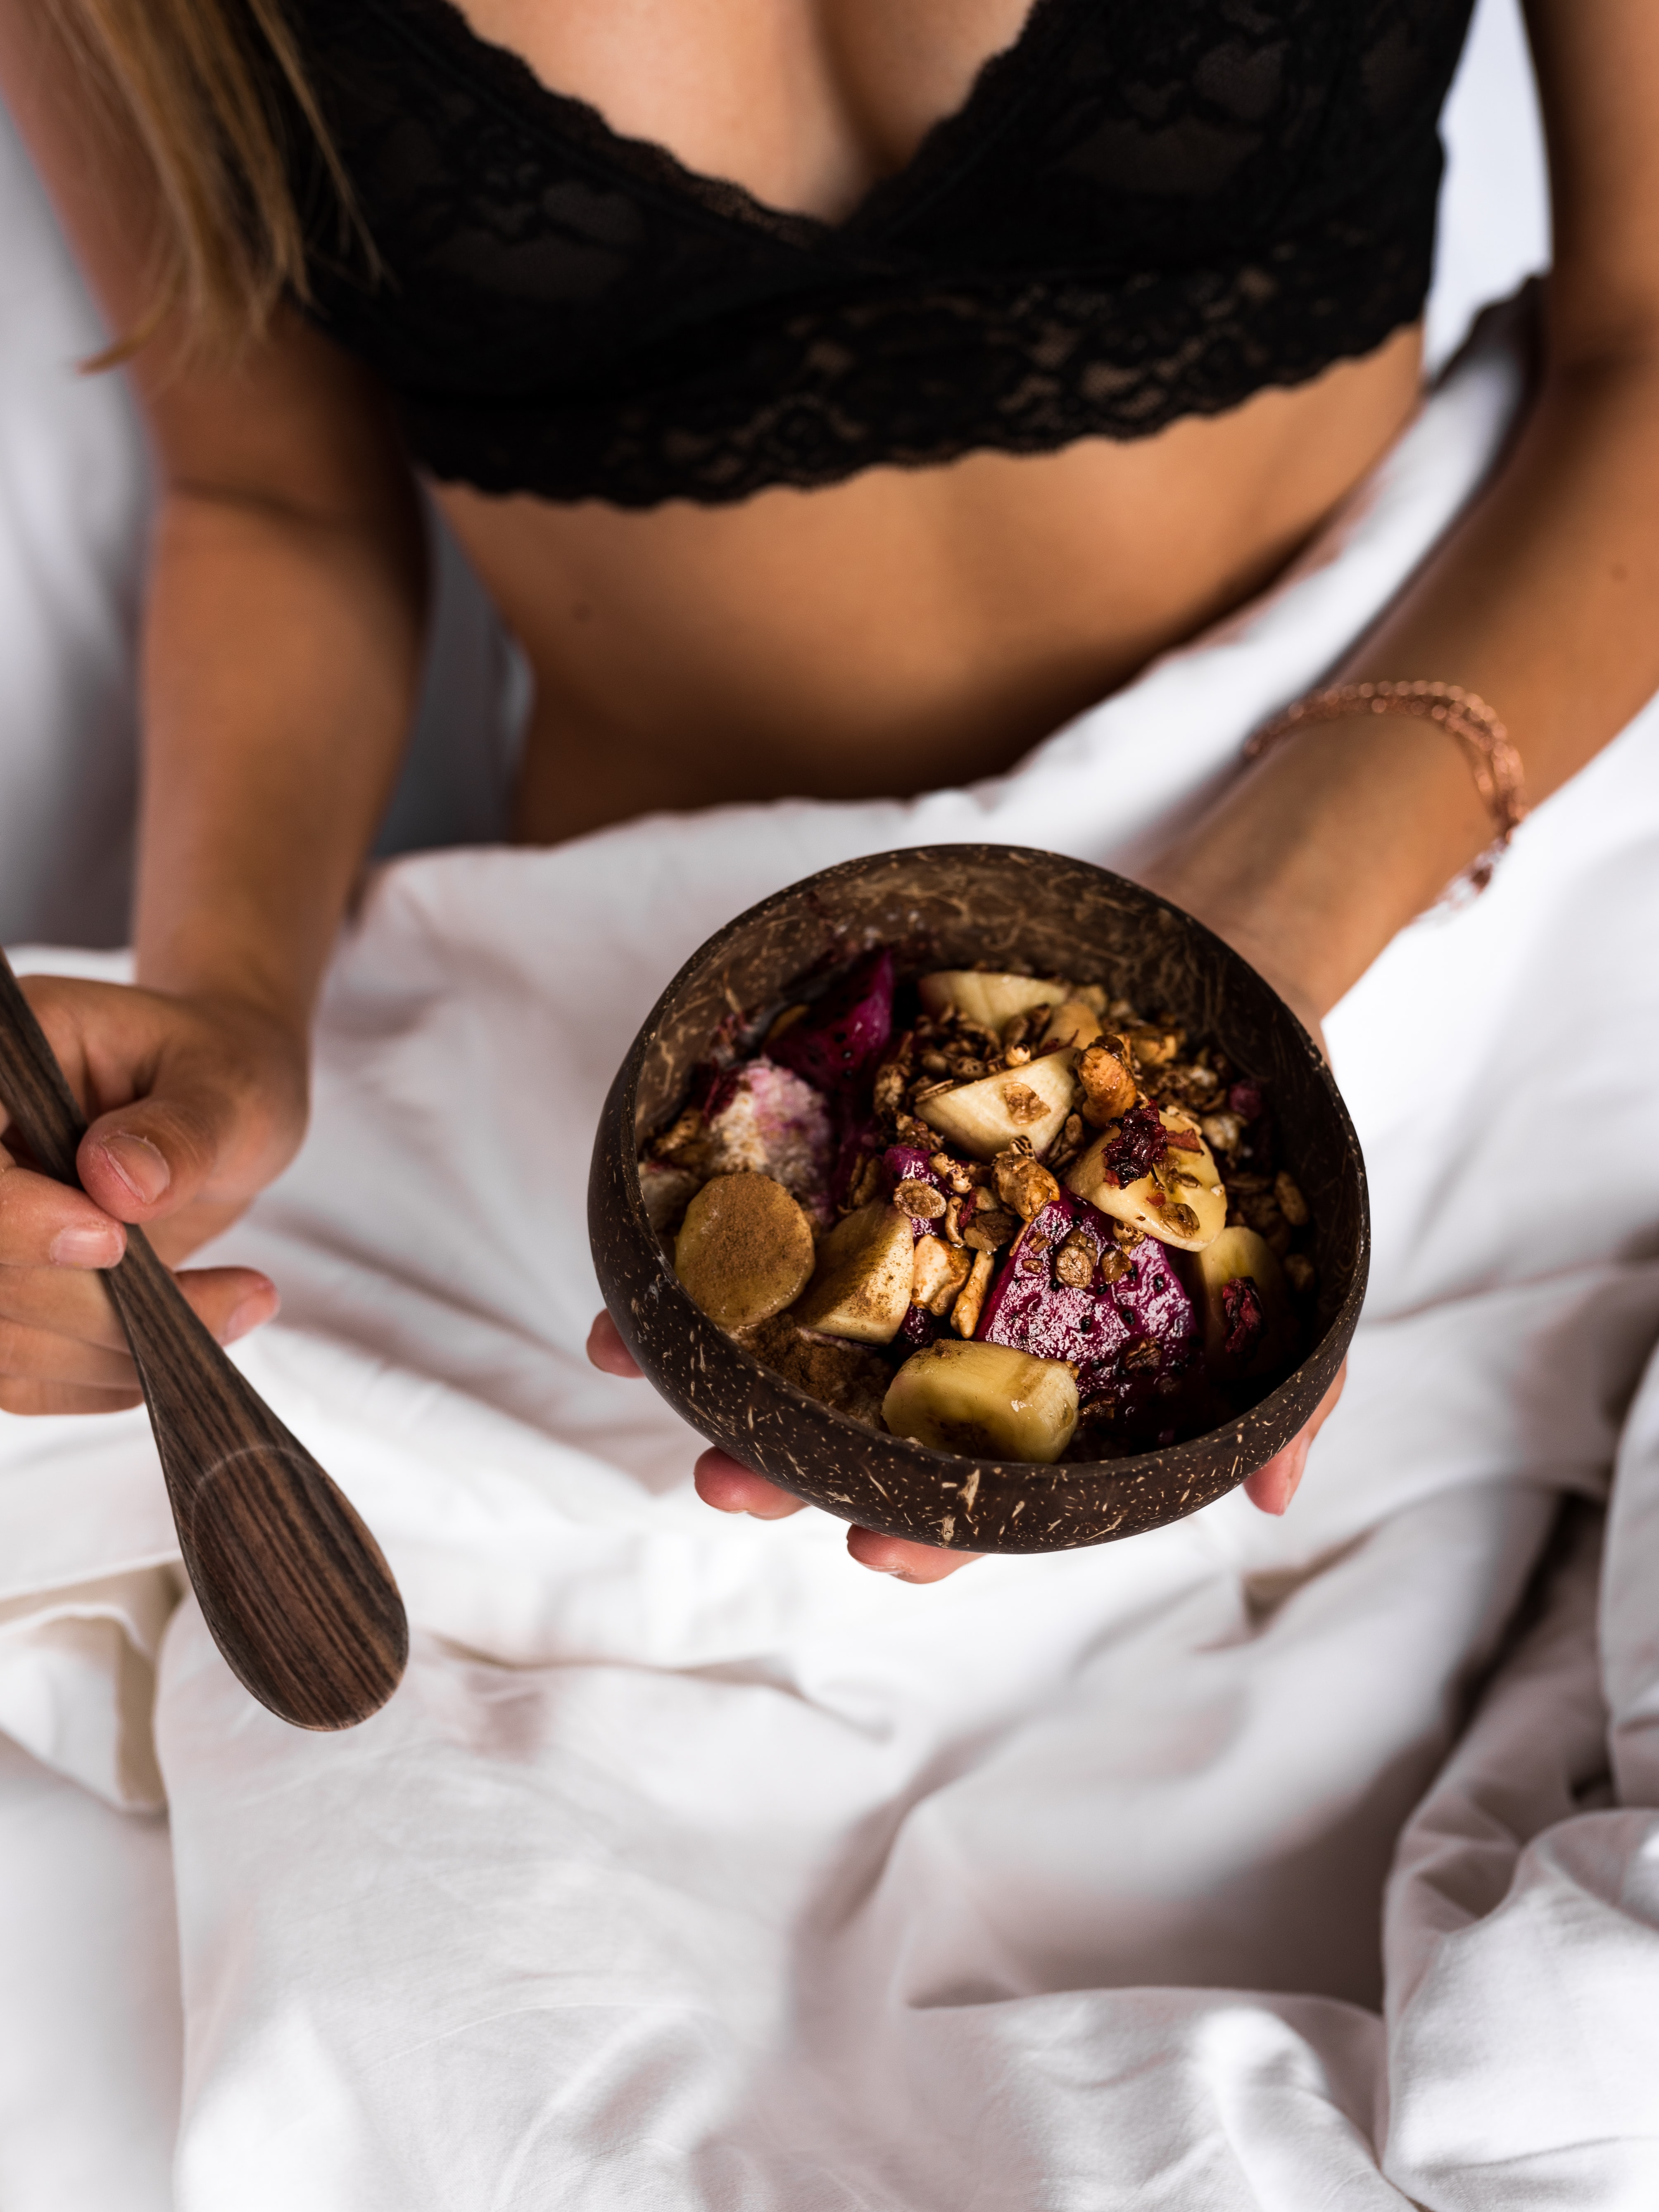 sliced fruits on coconut shell bowl on woman's hand in bed